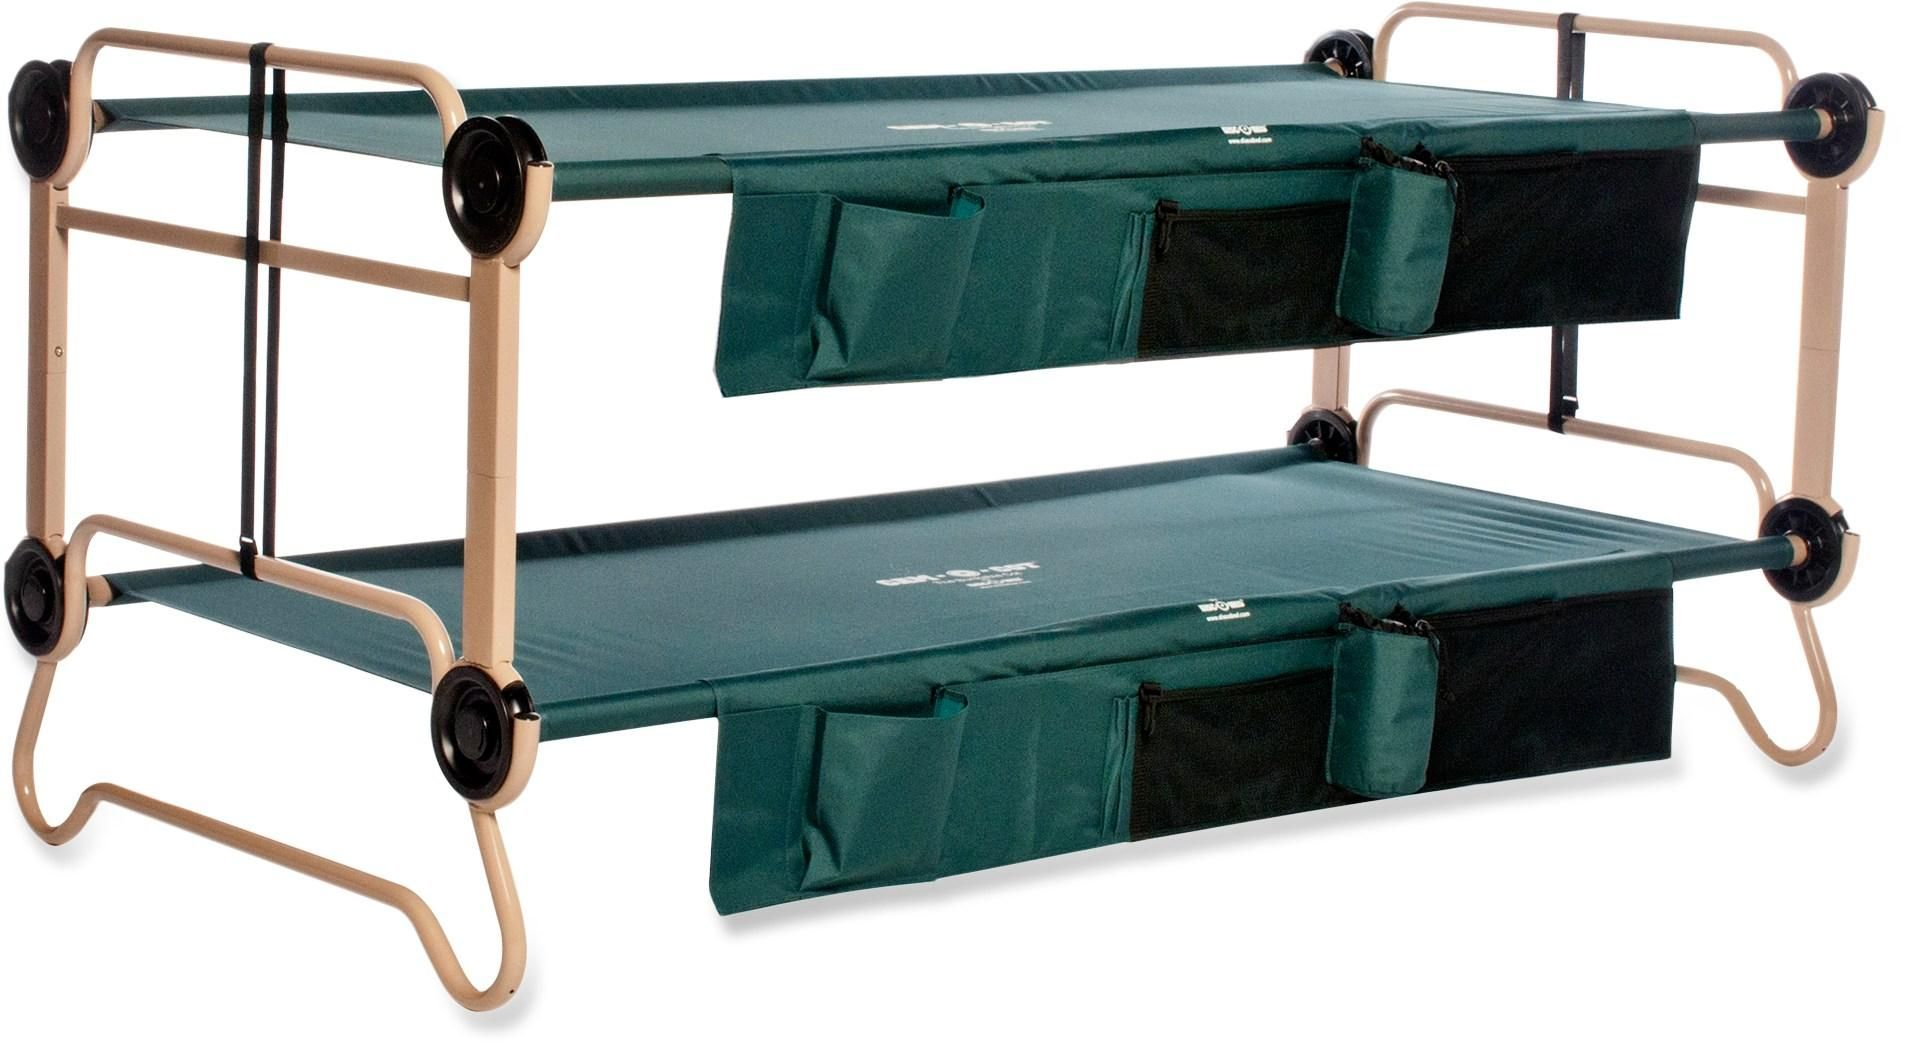 Disc O Bed Cam O Bunk Cots With Organizers X Large Portable